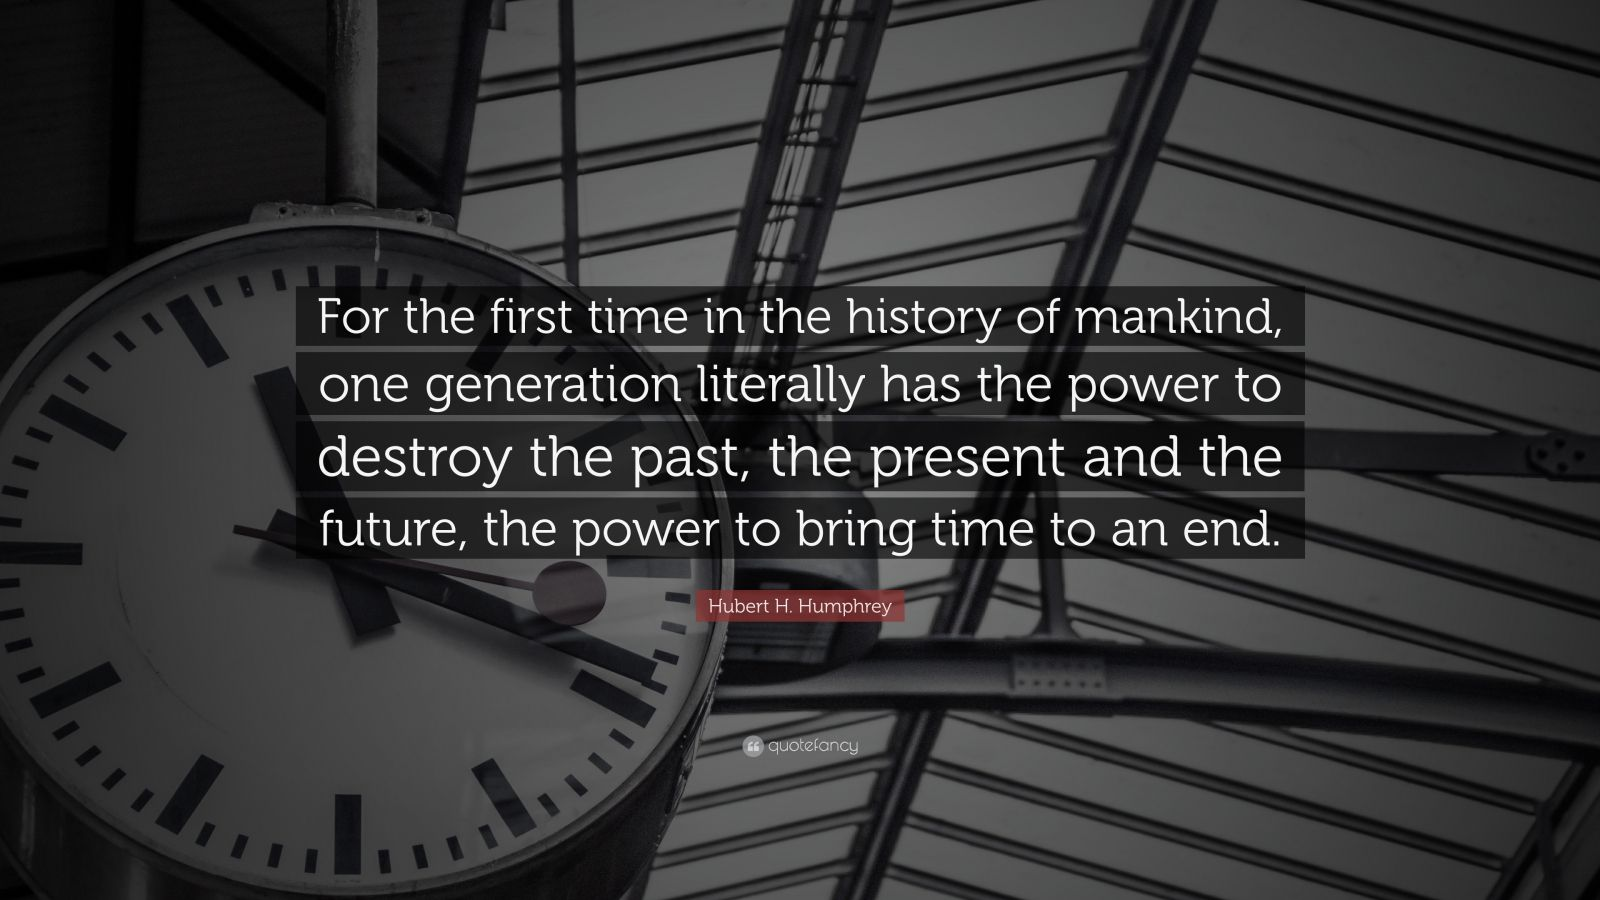 """Hubert H. Humphrey Quote: """"For the first time in the history of mankind, one generation literally has the power to destroy the past, the present and the future, the power to bring time to an end."""""""